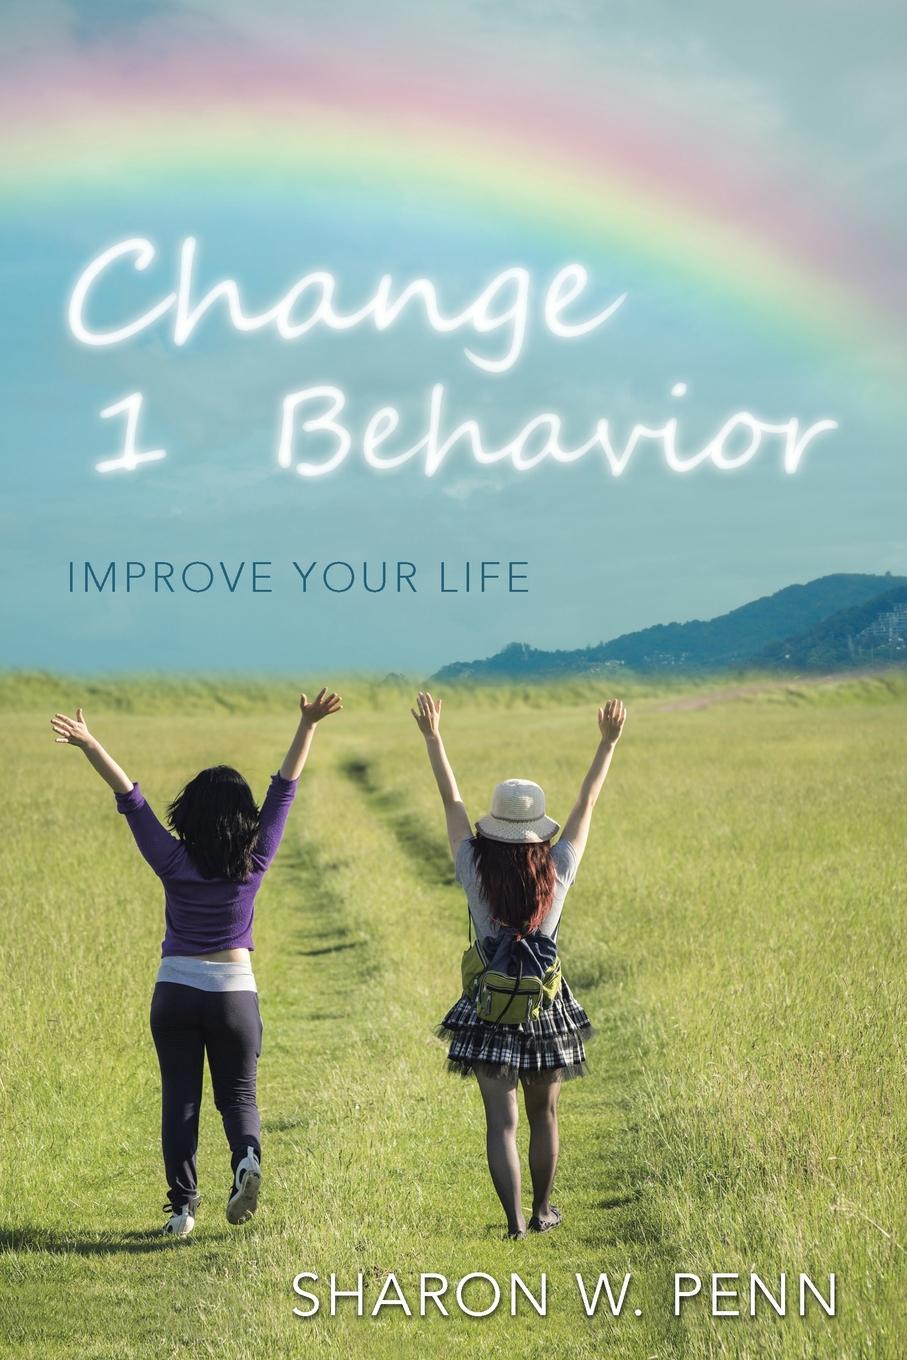 Sharon W. Penn Change 1 Behavior. Improve Your Life sue hadfield change one thing make one change and embrace a happier more successful you isbn 9780857084576